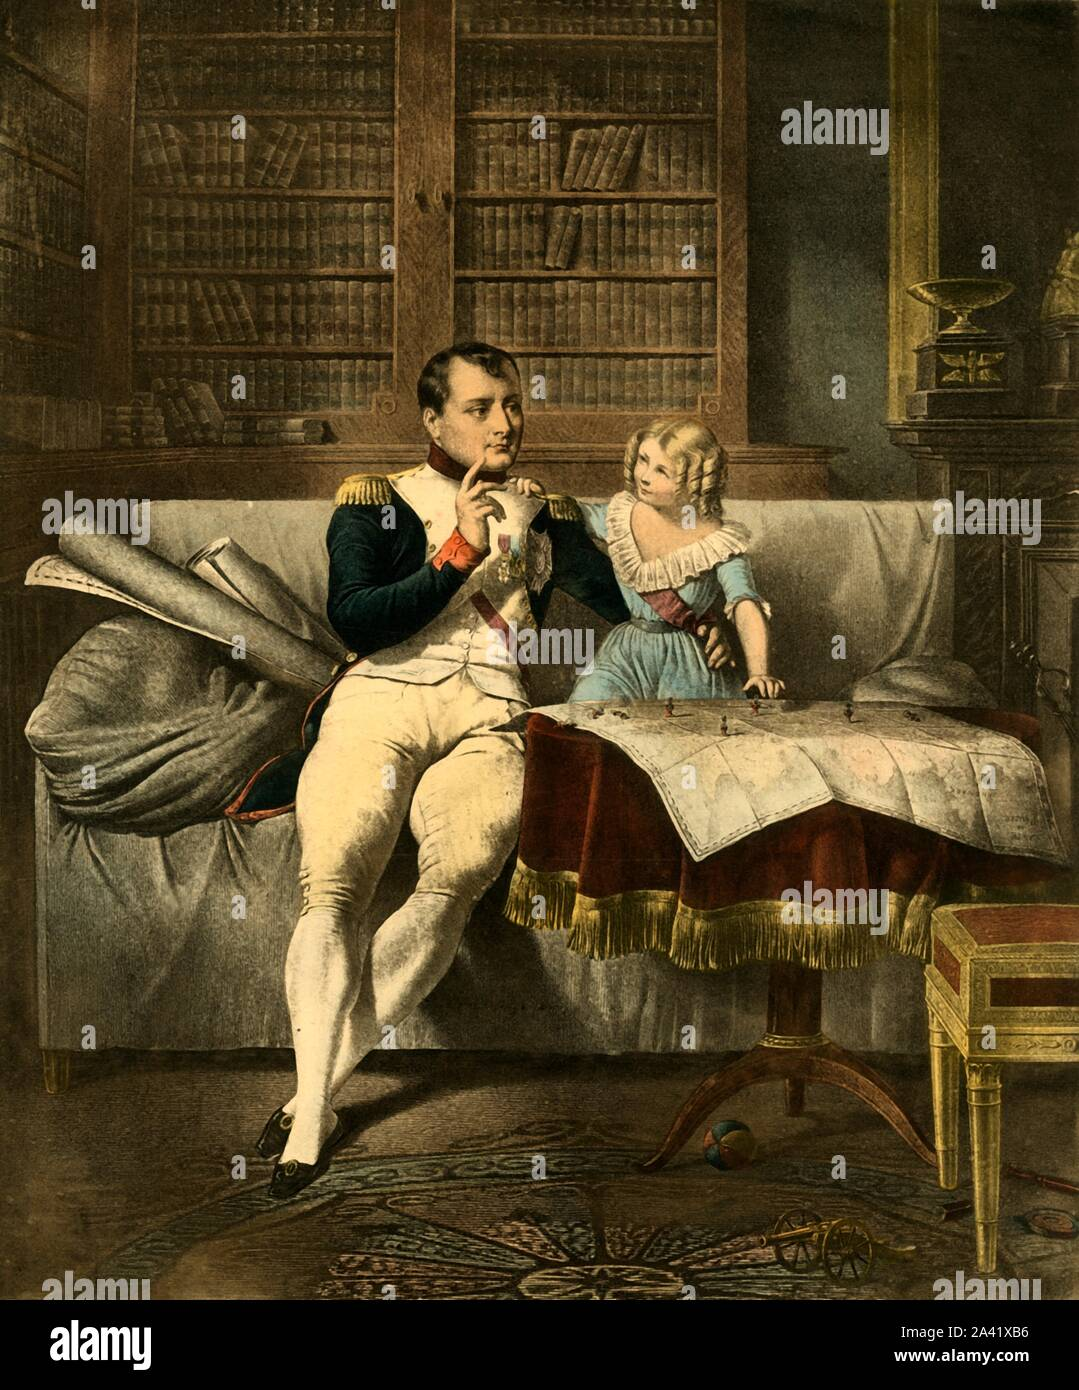 """'Le Cabinet de Napoleon', 19th century, (1921). 'Napoleon's Office'. The emperor Napoleon and a child look at maps and discuss military strategy. Despite the dress and ringlets, this may be his son, also named Napoleon, (1811-1832). It was common for boys to wear girls' clothes during this period. A toy cannon on the floor alludes to the many battles the emperor fought. From """"Napoleon"""", by Raymond Guyot, [H. Floury, Paris, 1921] Stock Photo"""